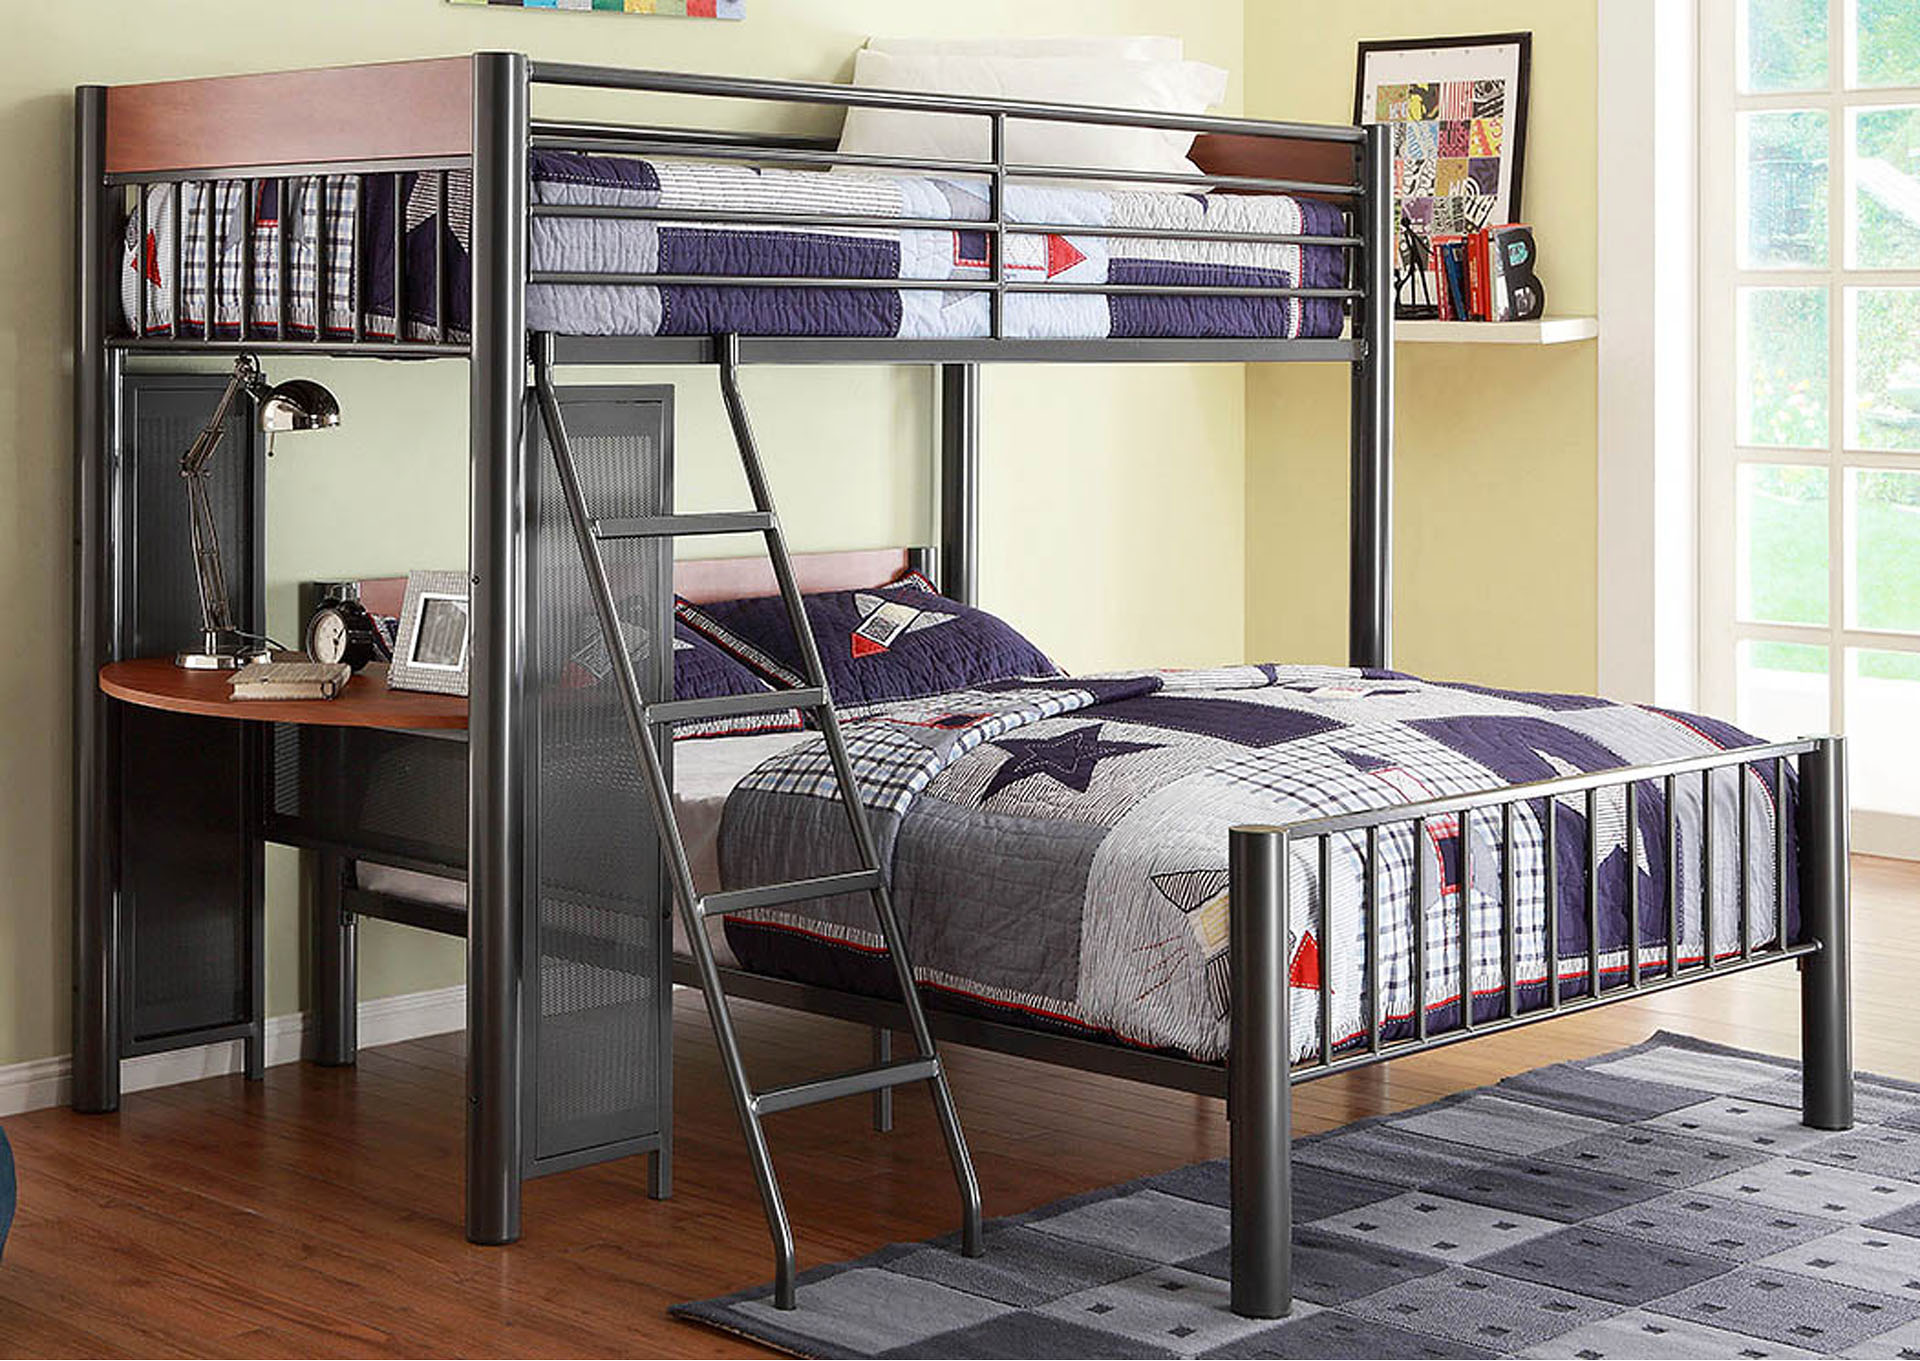 Division Grey Twin/Twin Loft Metal Bed w/Shelf,Homelegance